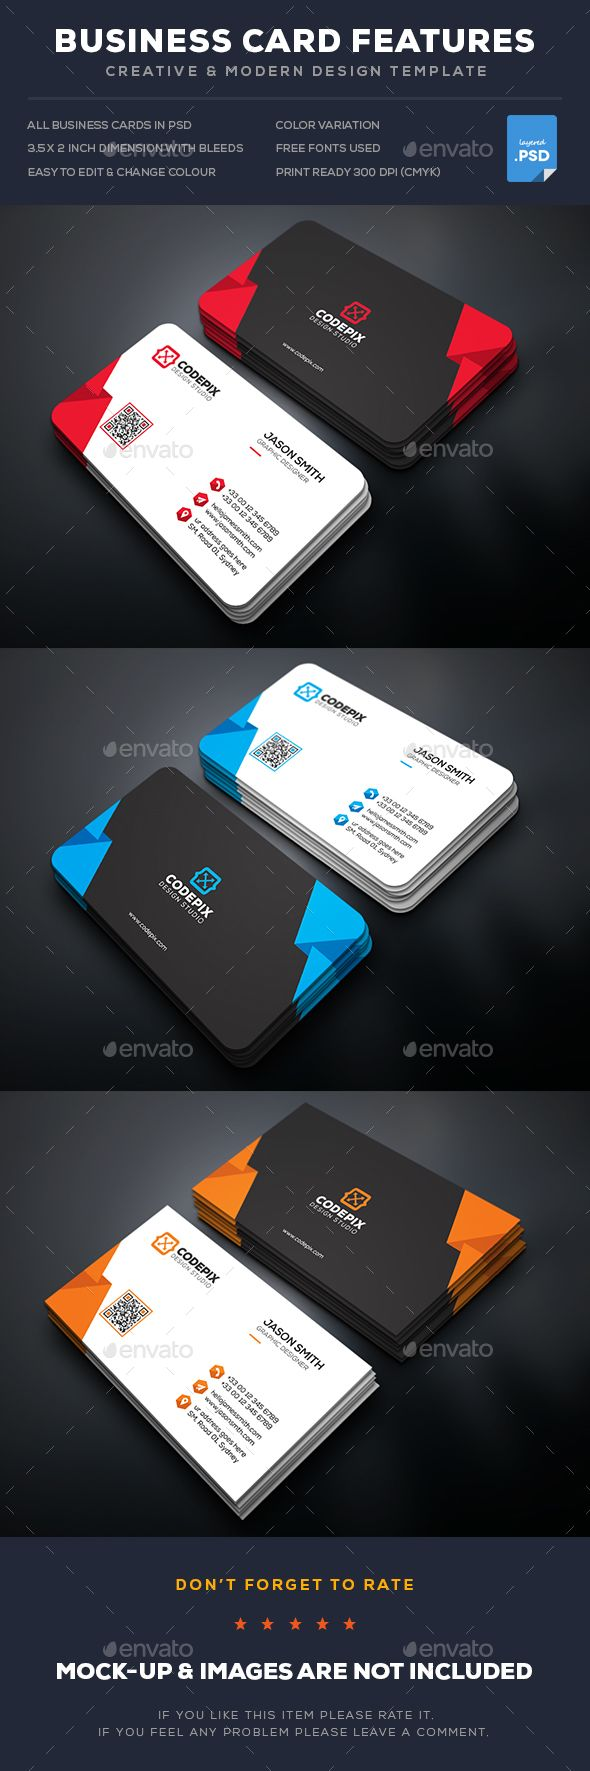 Shape Business Card Template PSD. Download here: http://graphicriver.net/item/shape-business-card/16918730?ref=ksioks